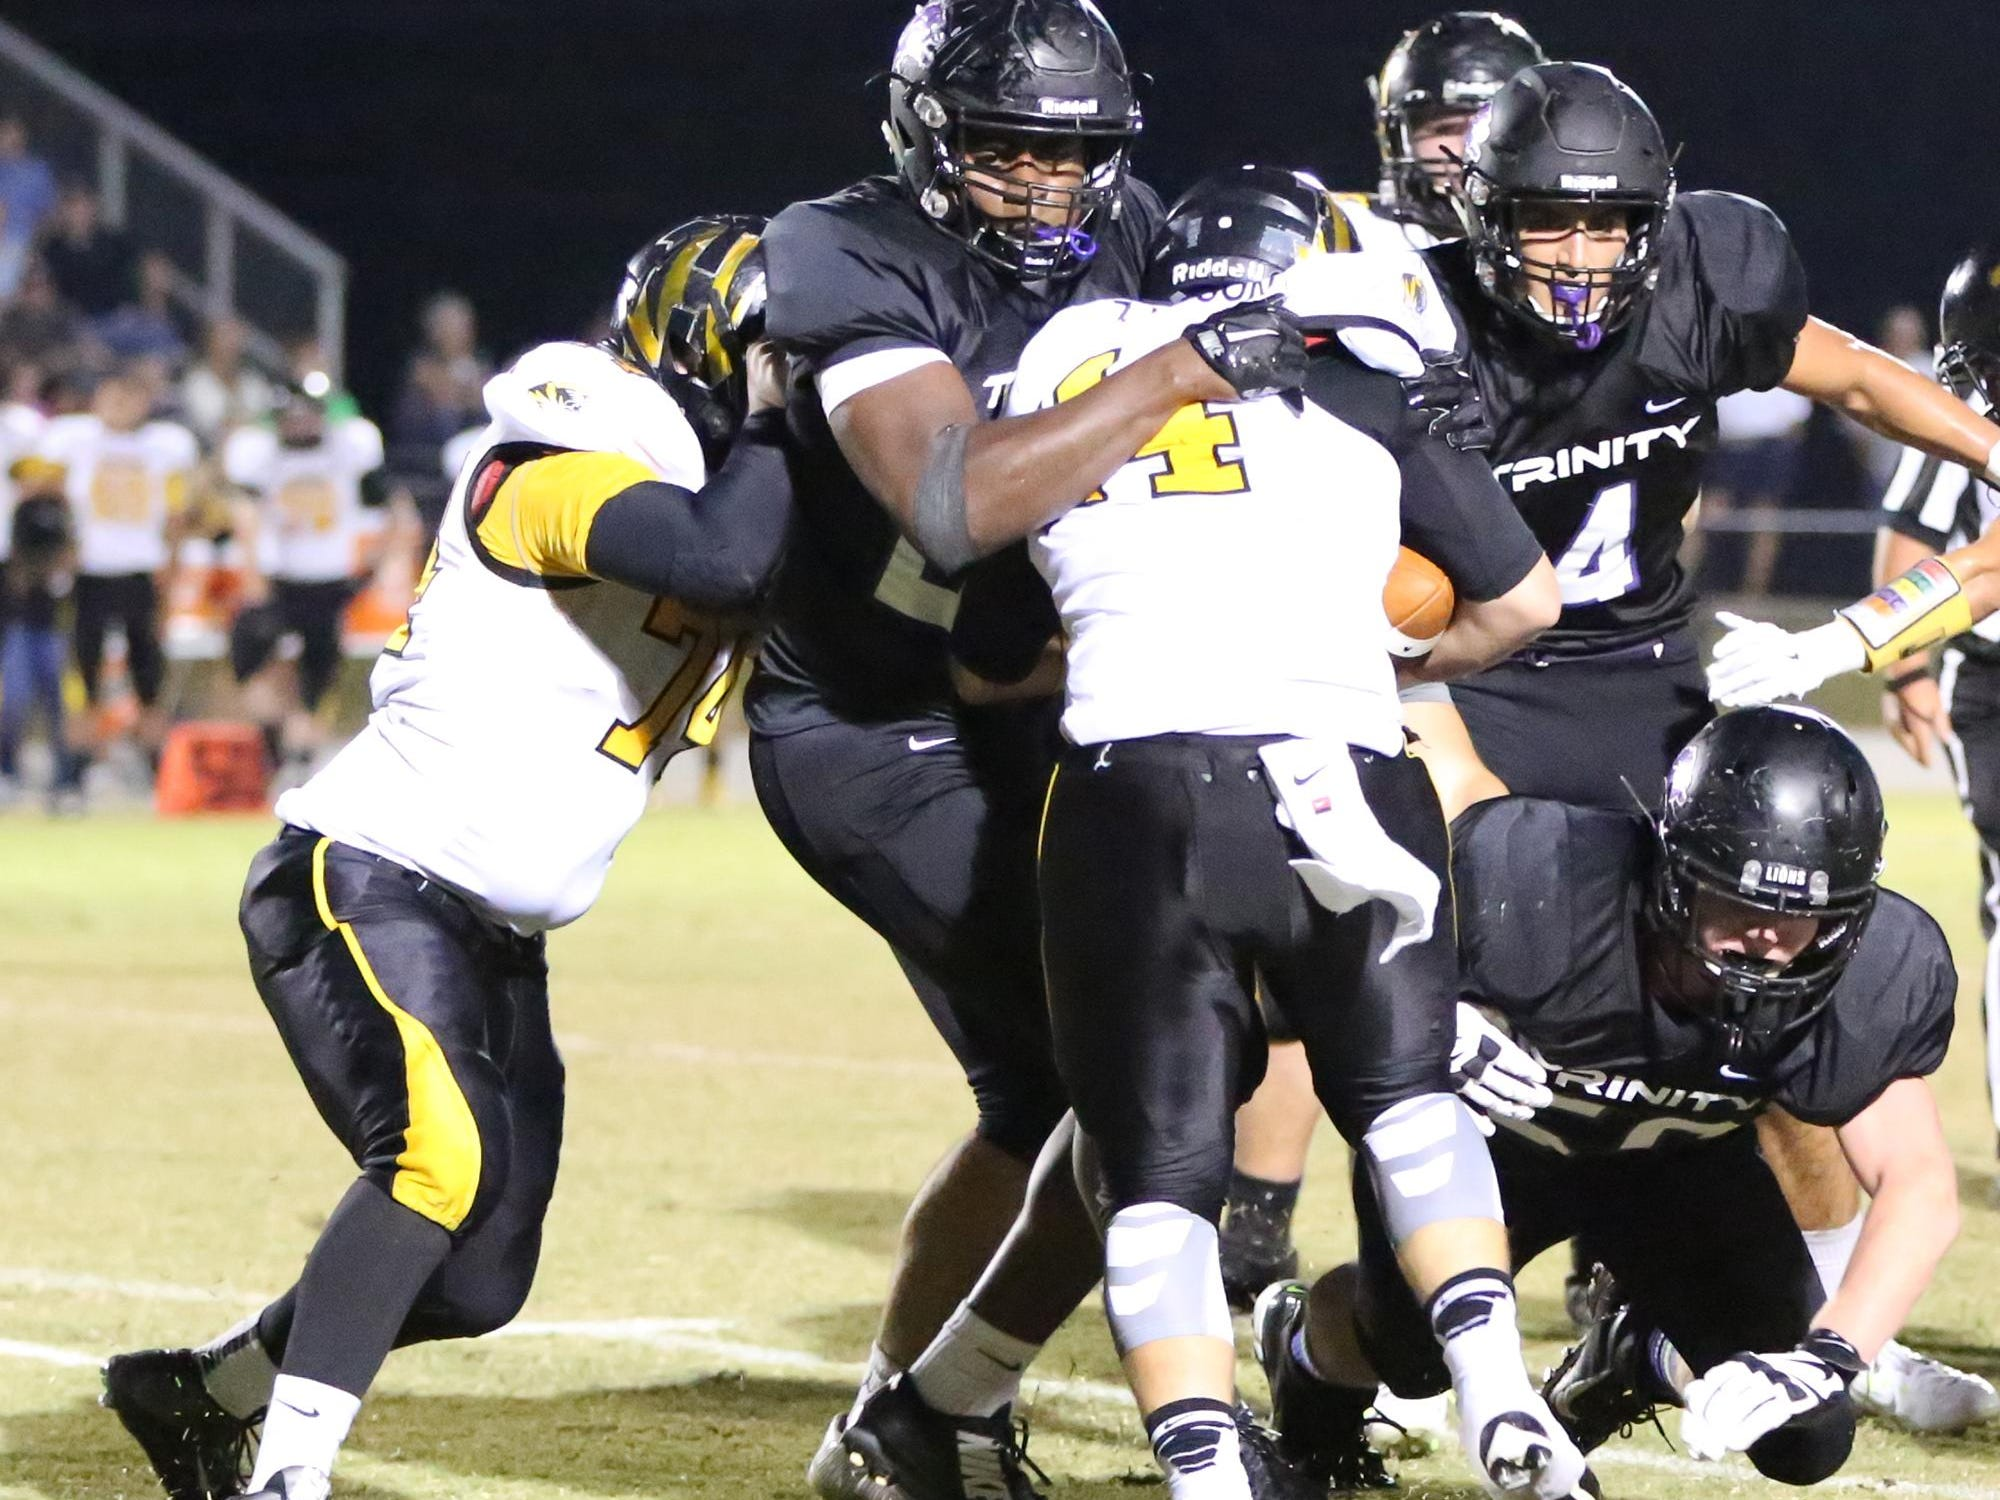 TCA's Chris Tucker wraps up the Halls ball carrier for a tackle when they played in Week 5 of the regular season.